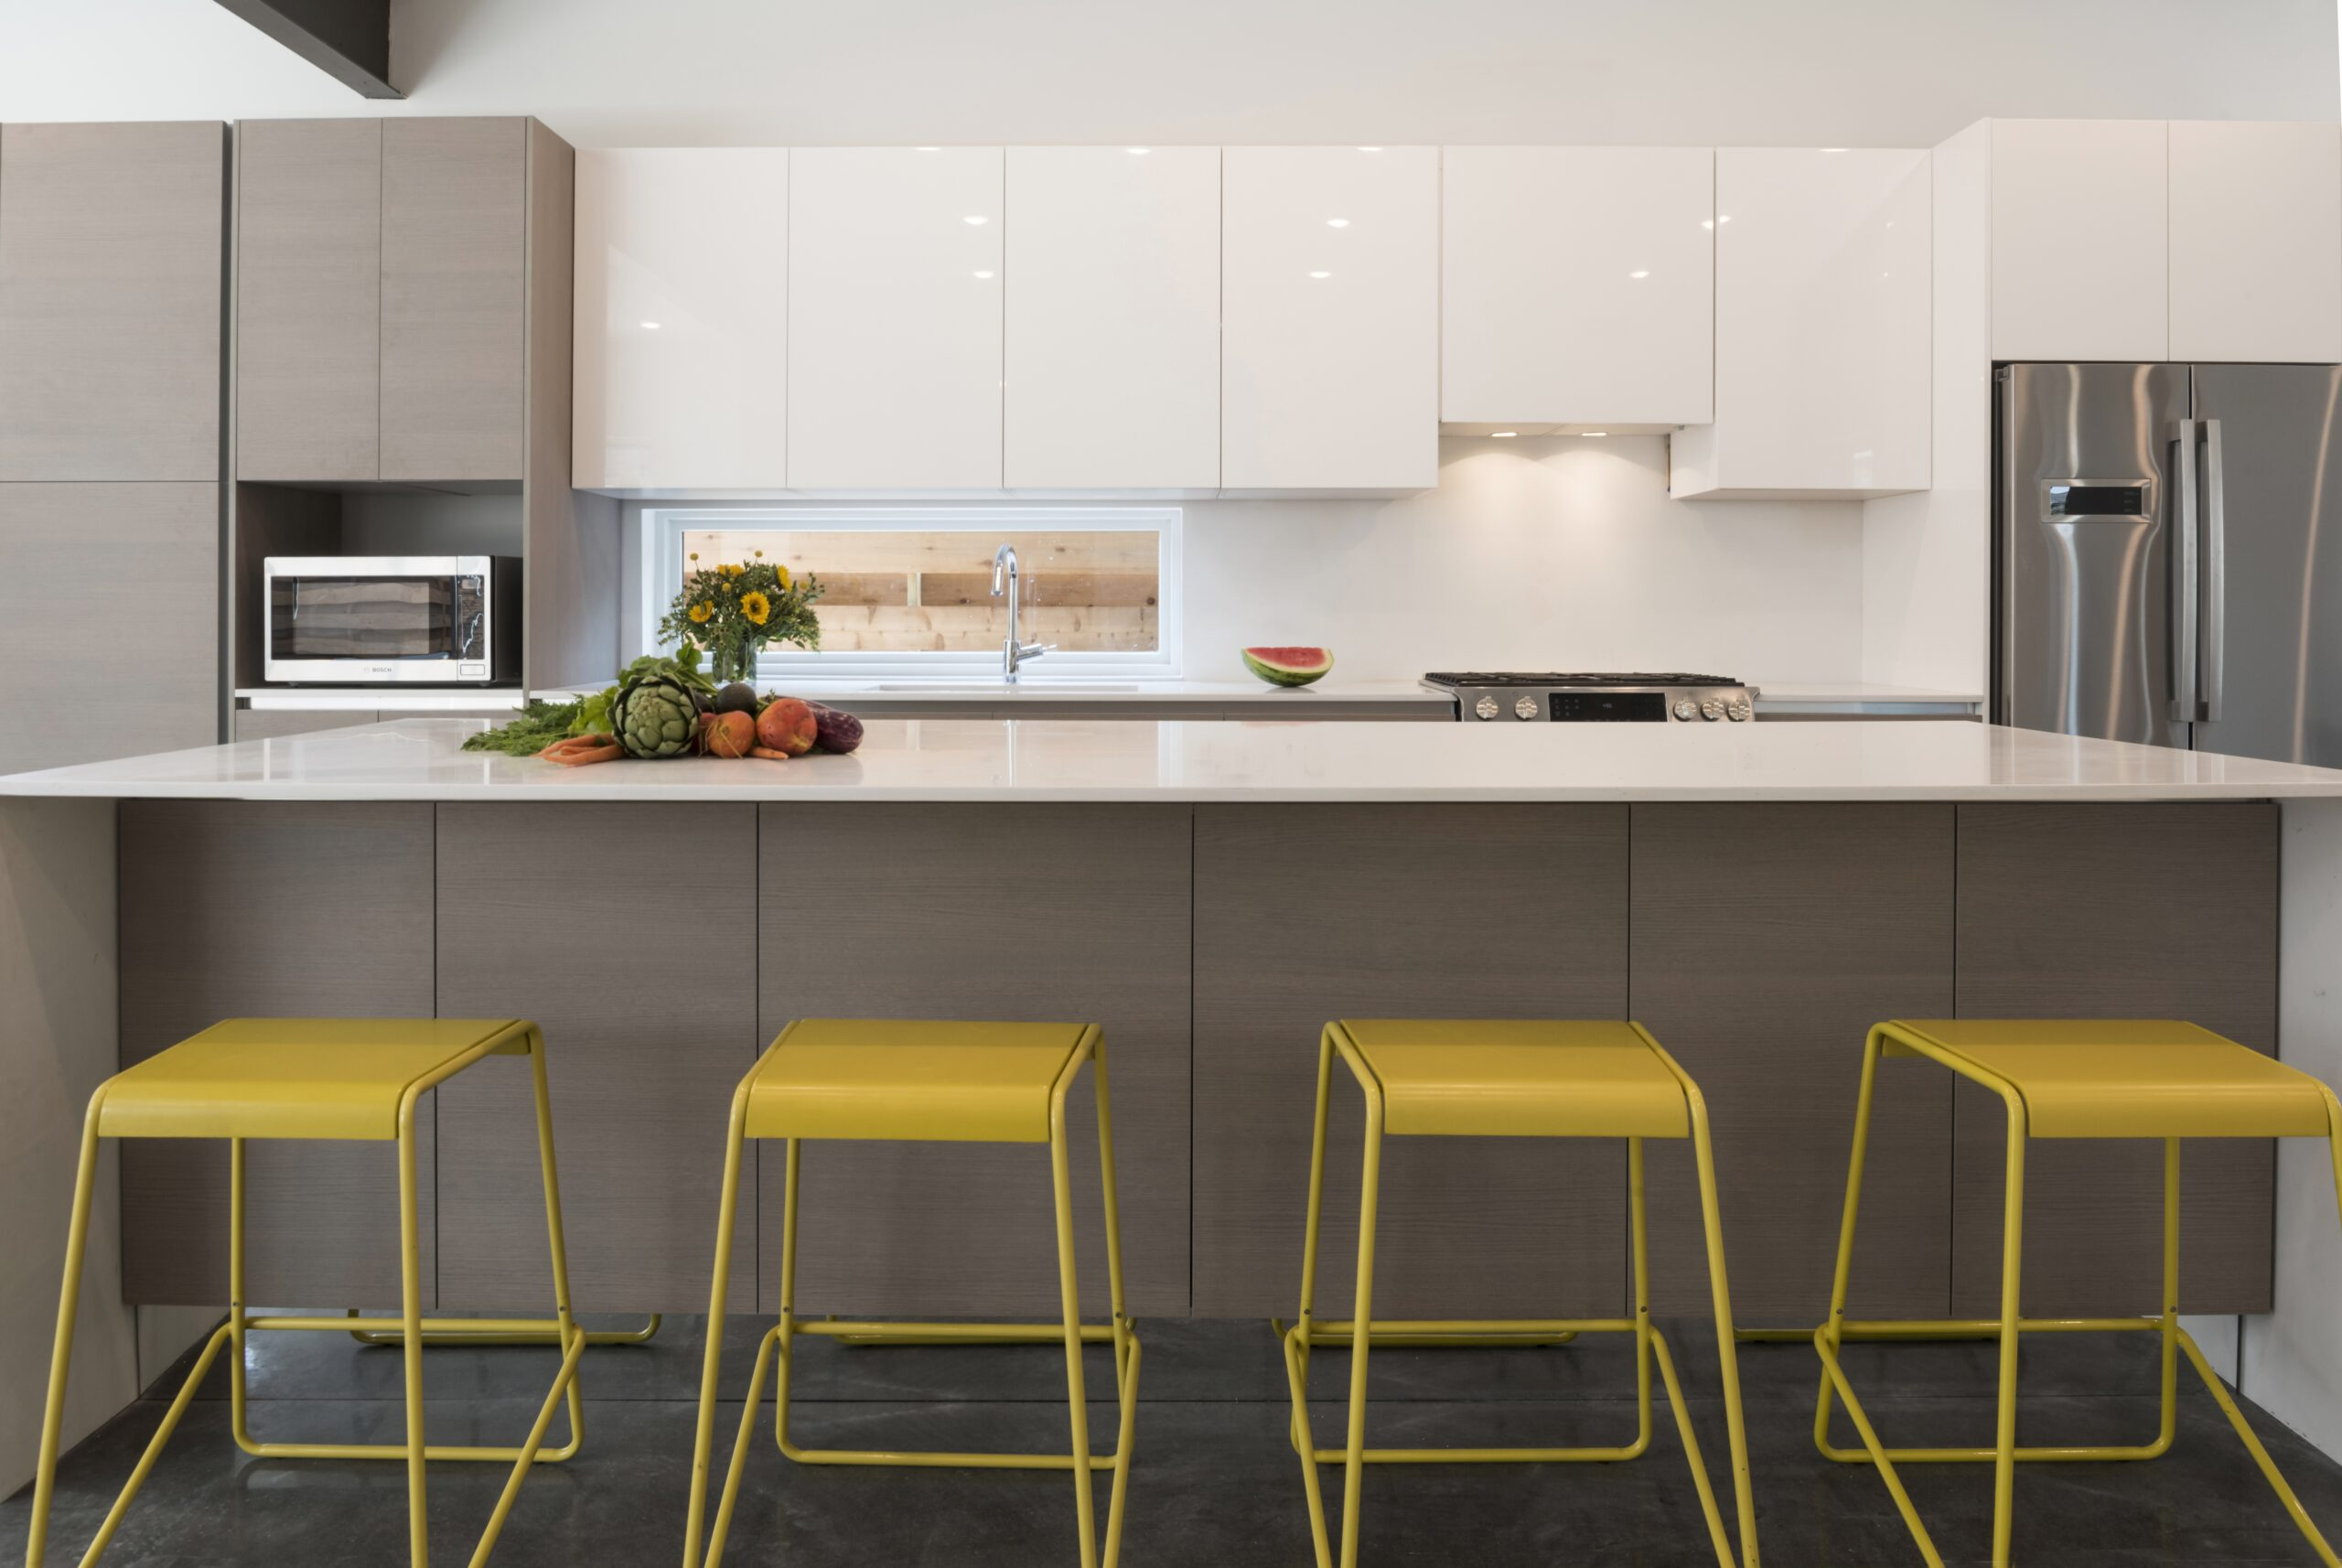 Urban_Terrace_Prefab_3_KitchenLR